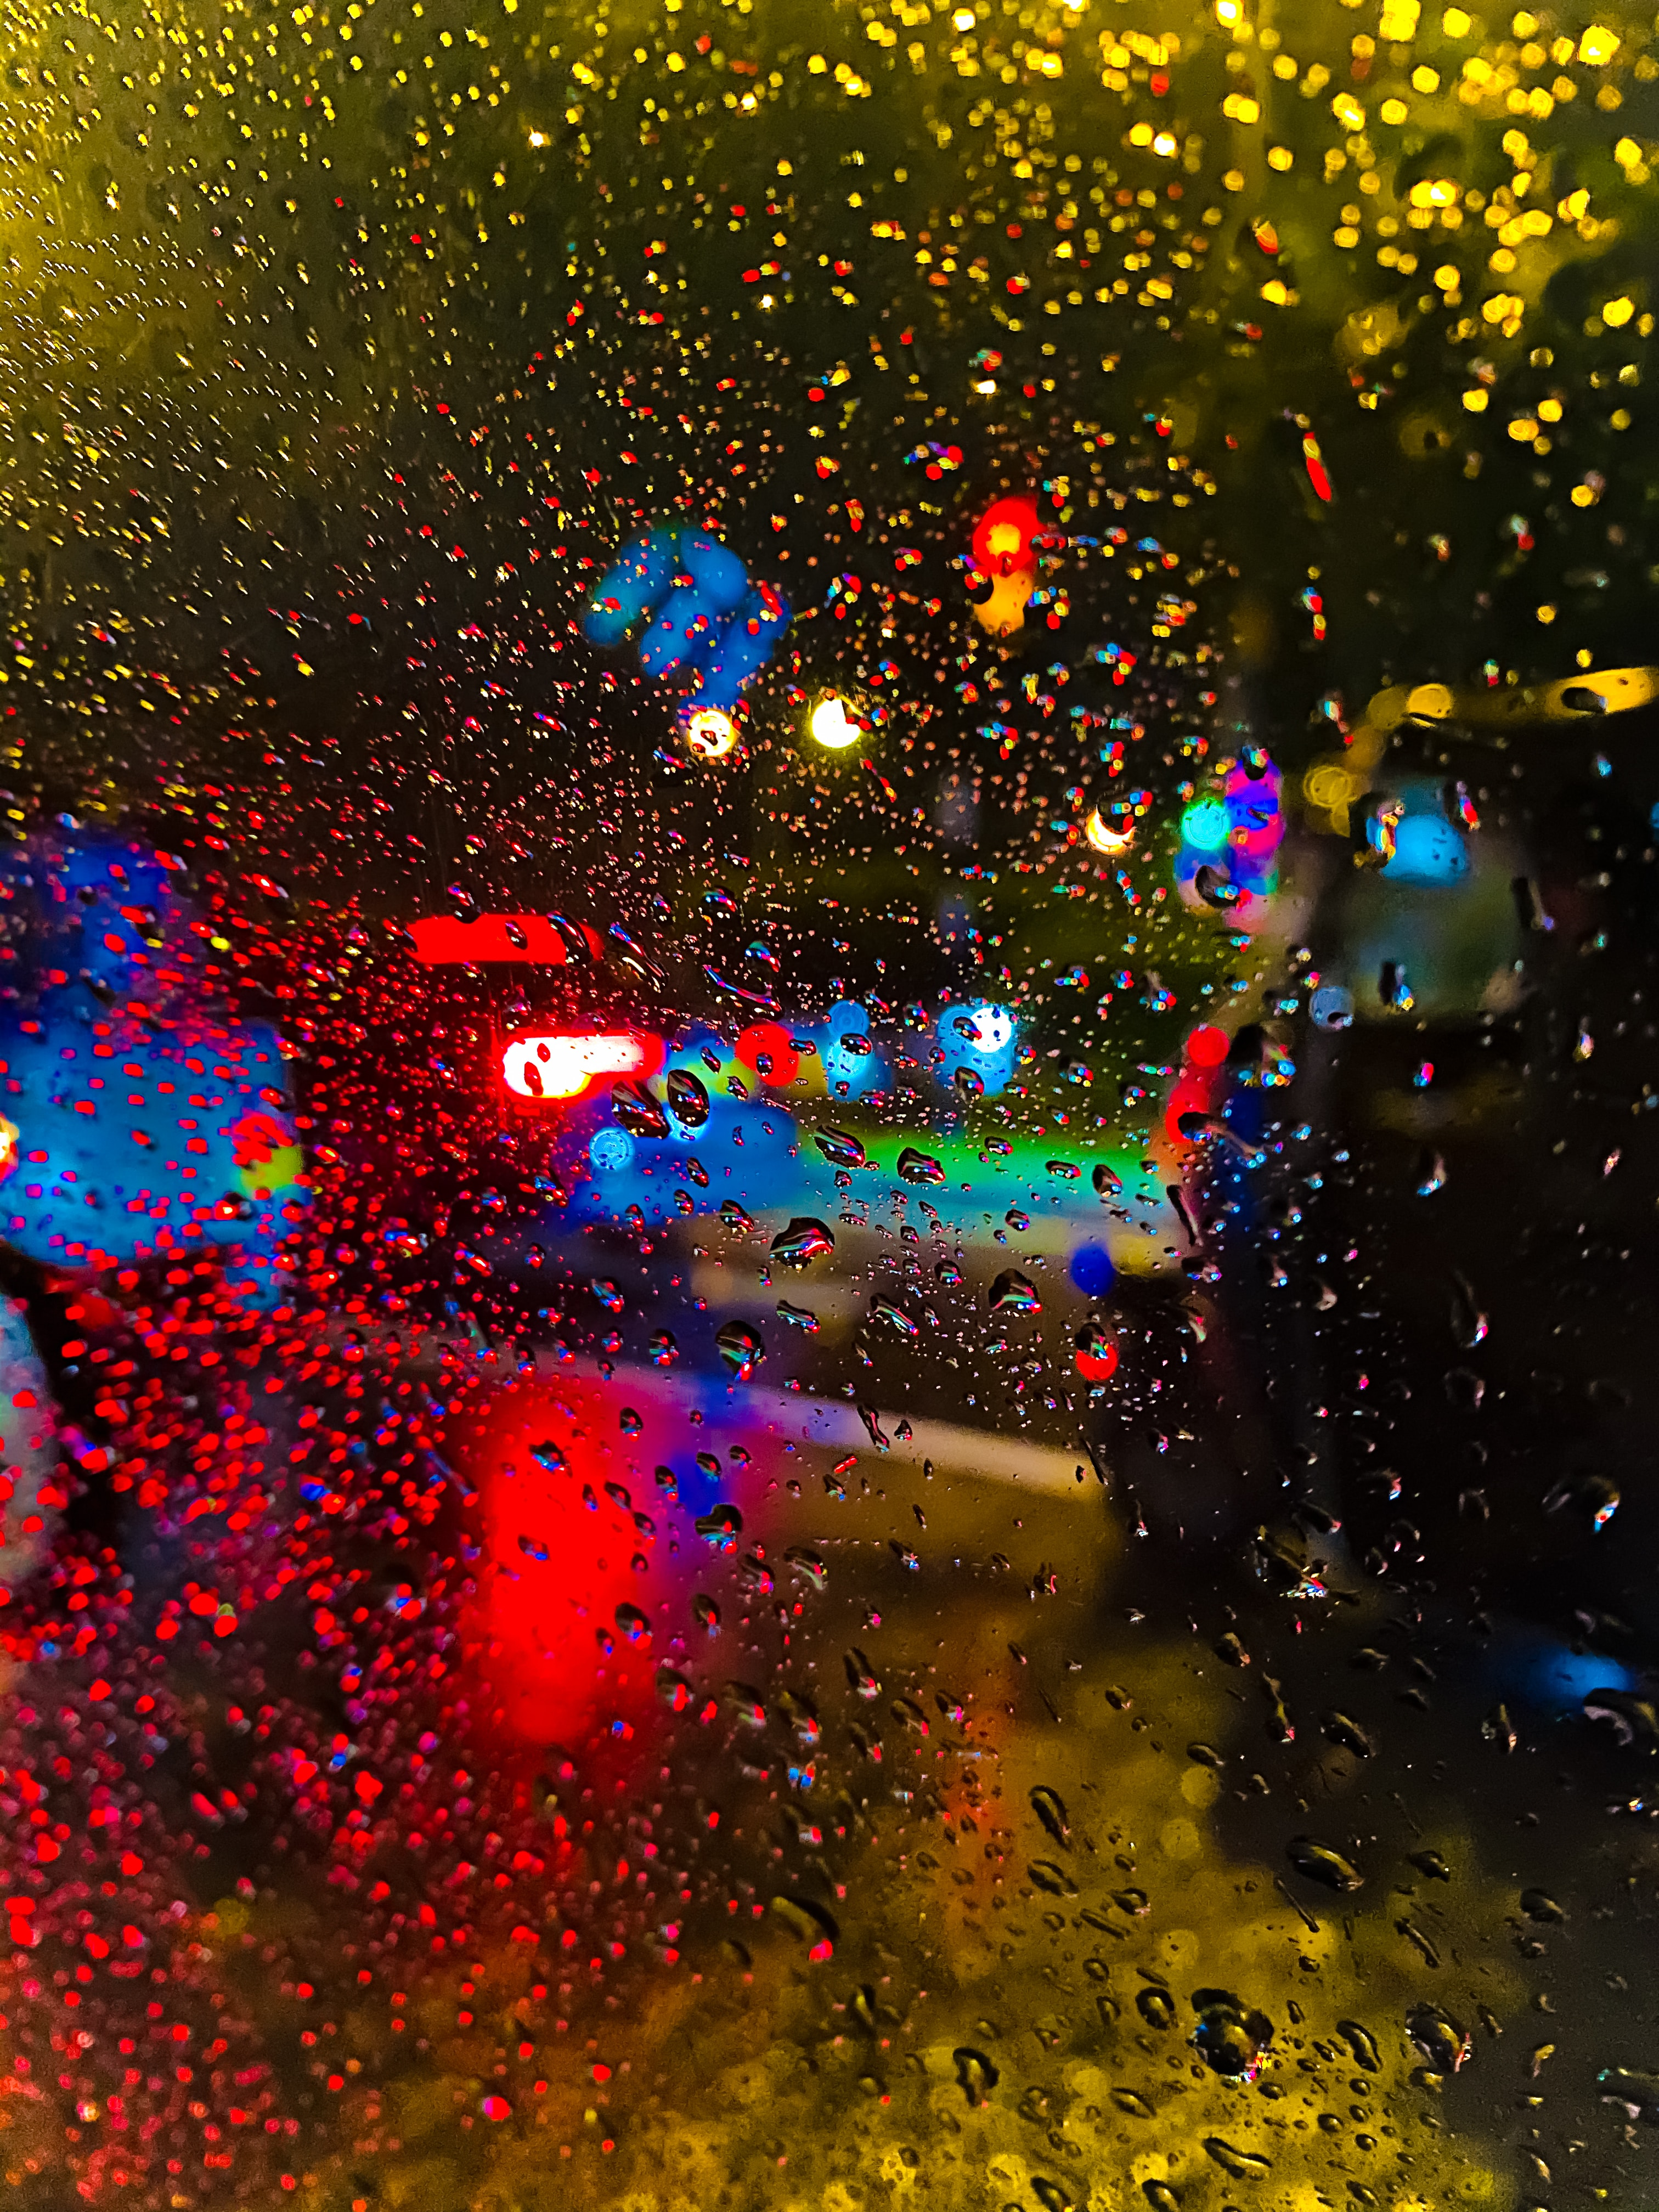 65699 download wallpaper Blur, Rain, Drops, Lights, Macro, Smooth, Glass screensavers and pictures for free